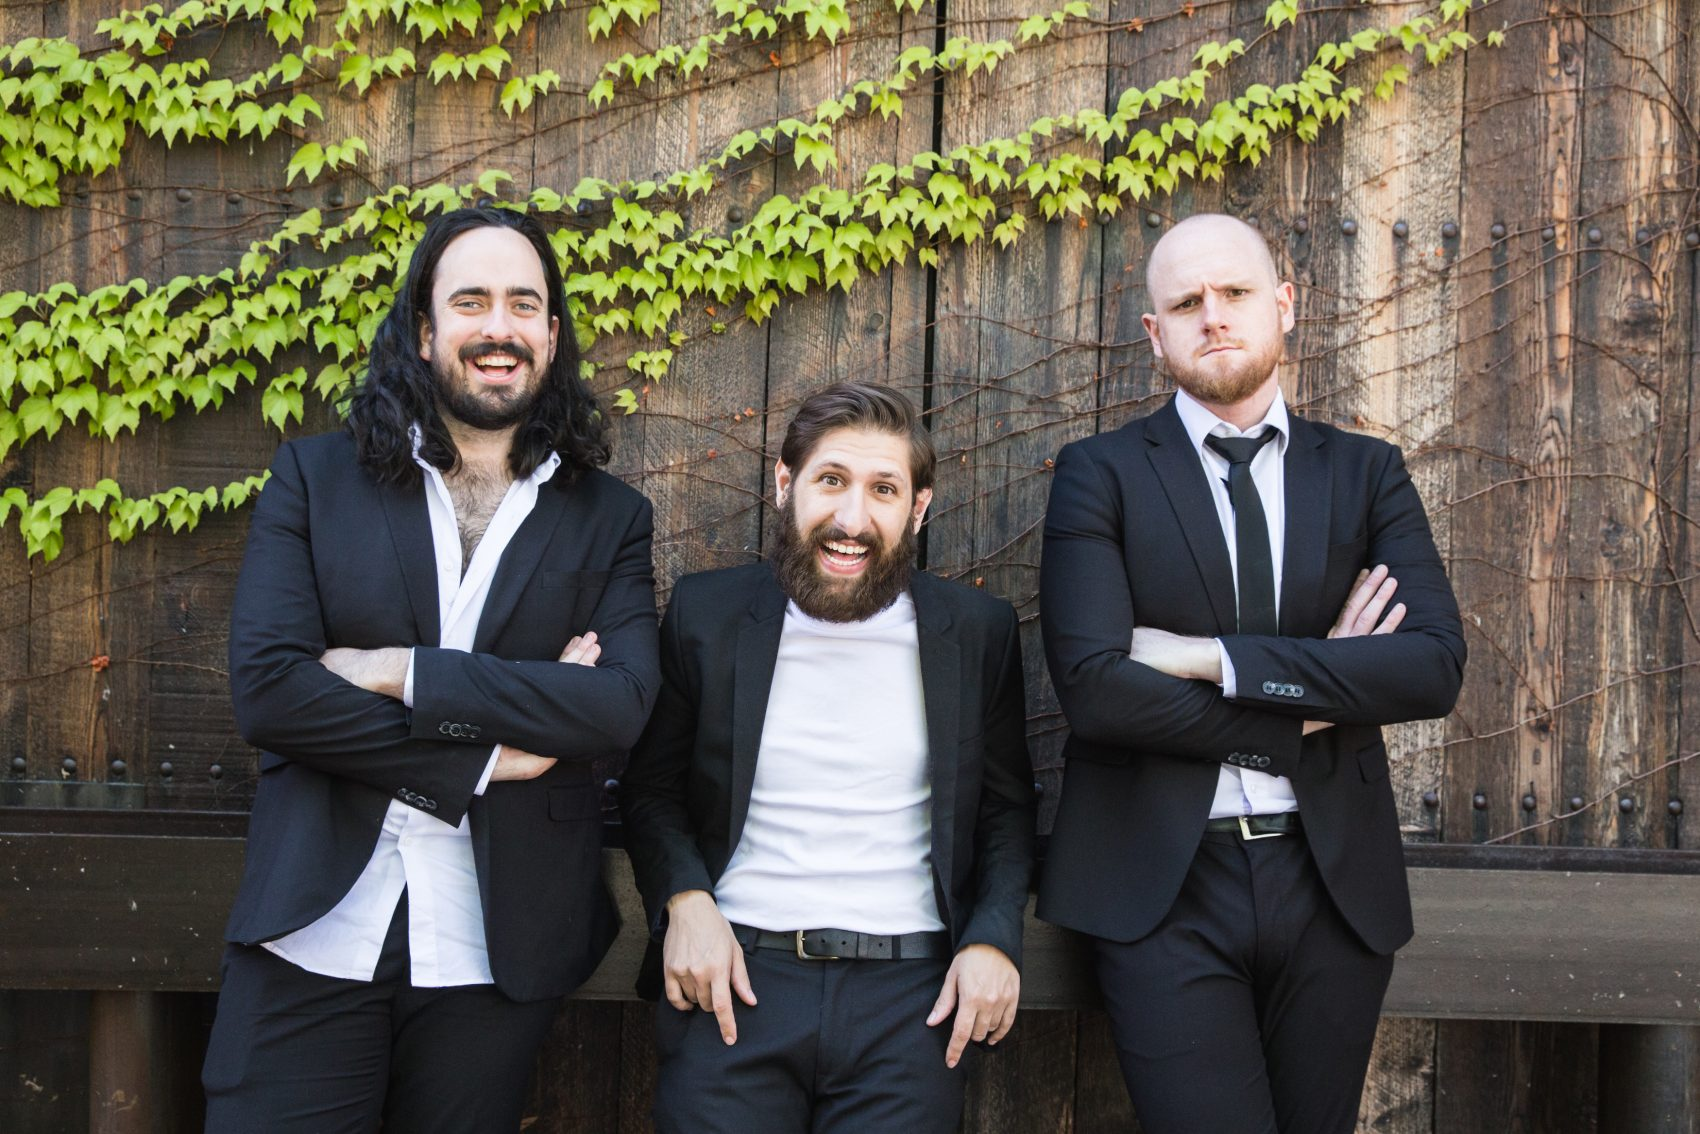 Left to right, Zachary Ruane, Mark Samual Bonanno and Broden Kelly of comedy troupe Aunty Donna. (Courtesy Annelise Nappa)